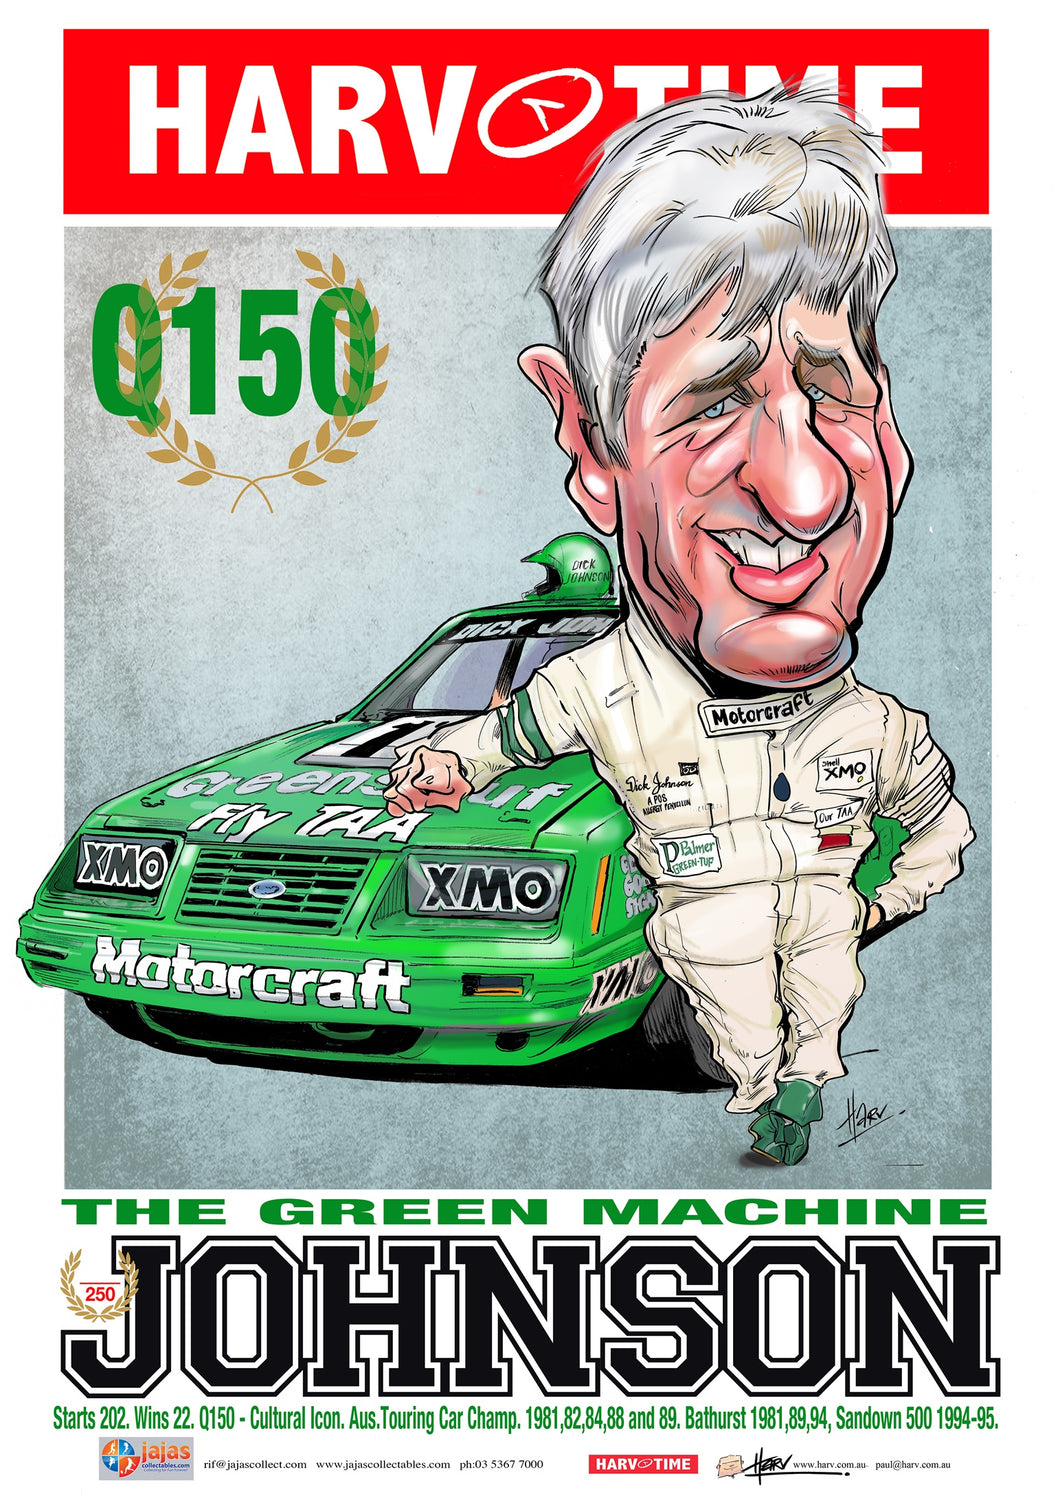 Dick Johnston, The Green Machine, Harv Time Poster